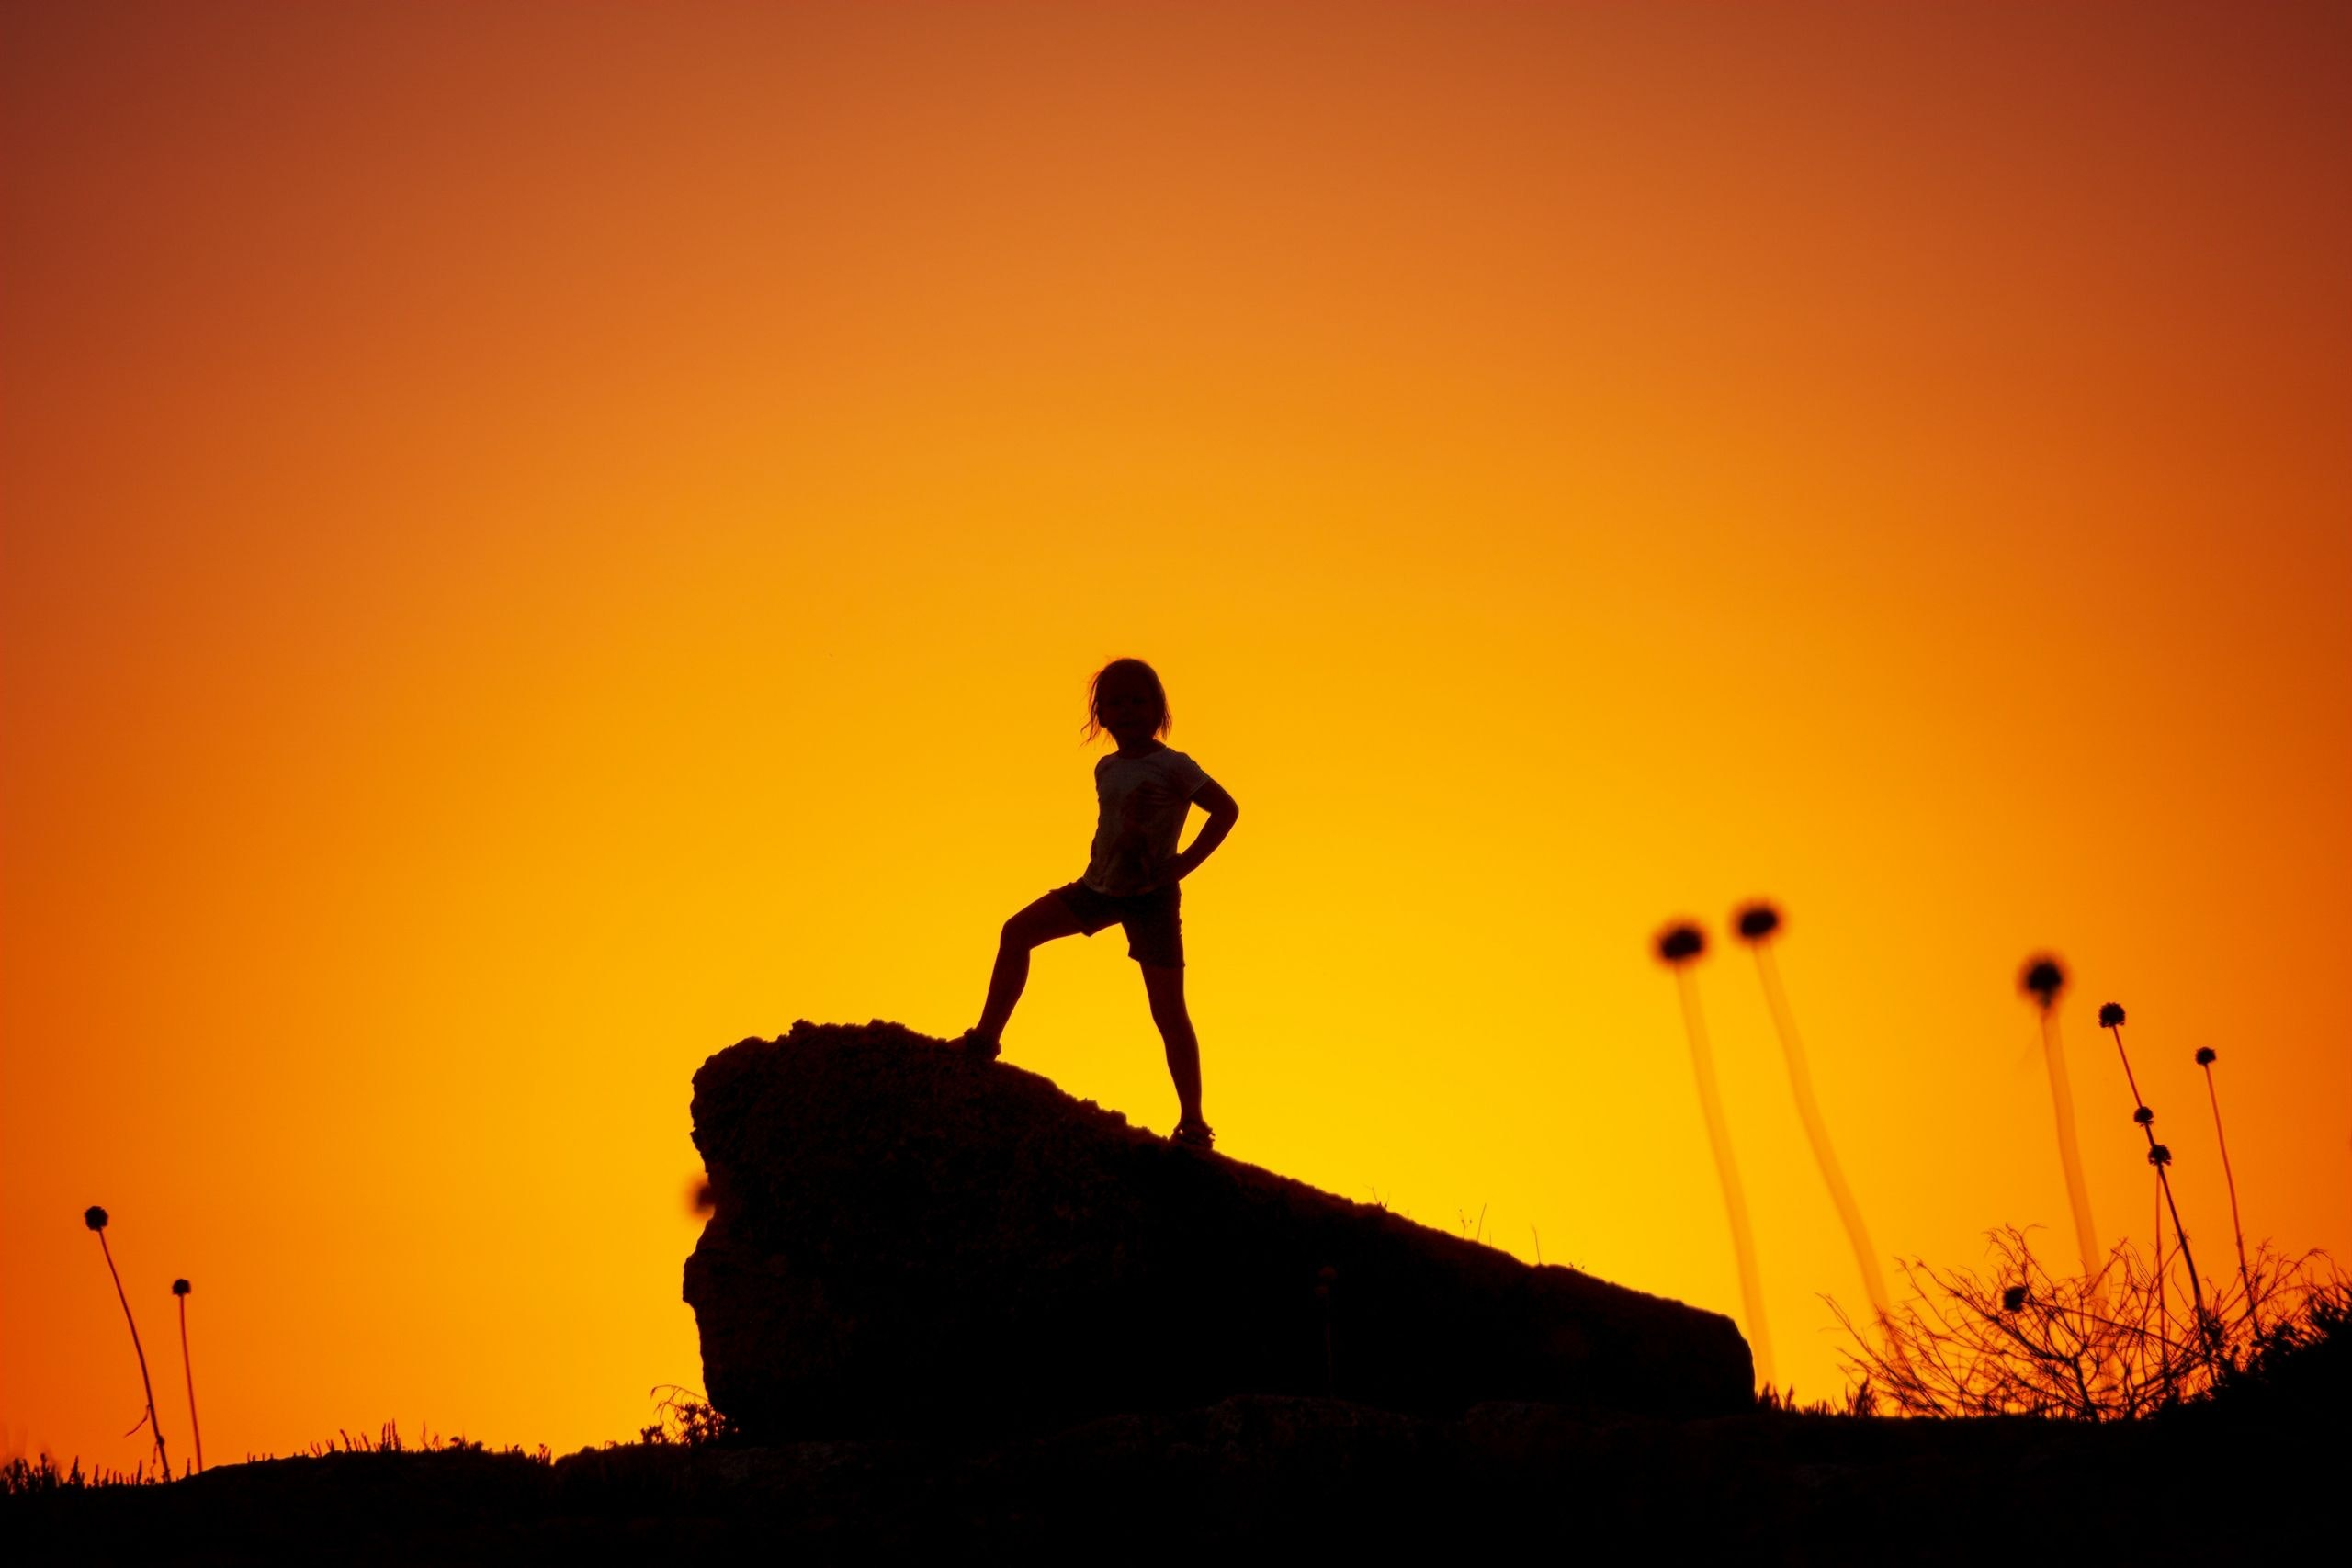 sunset wallpaper,people in nature,sky,silhouette,sunset,backlighting